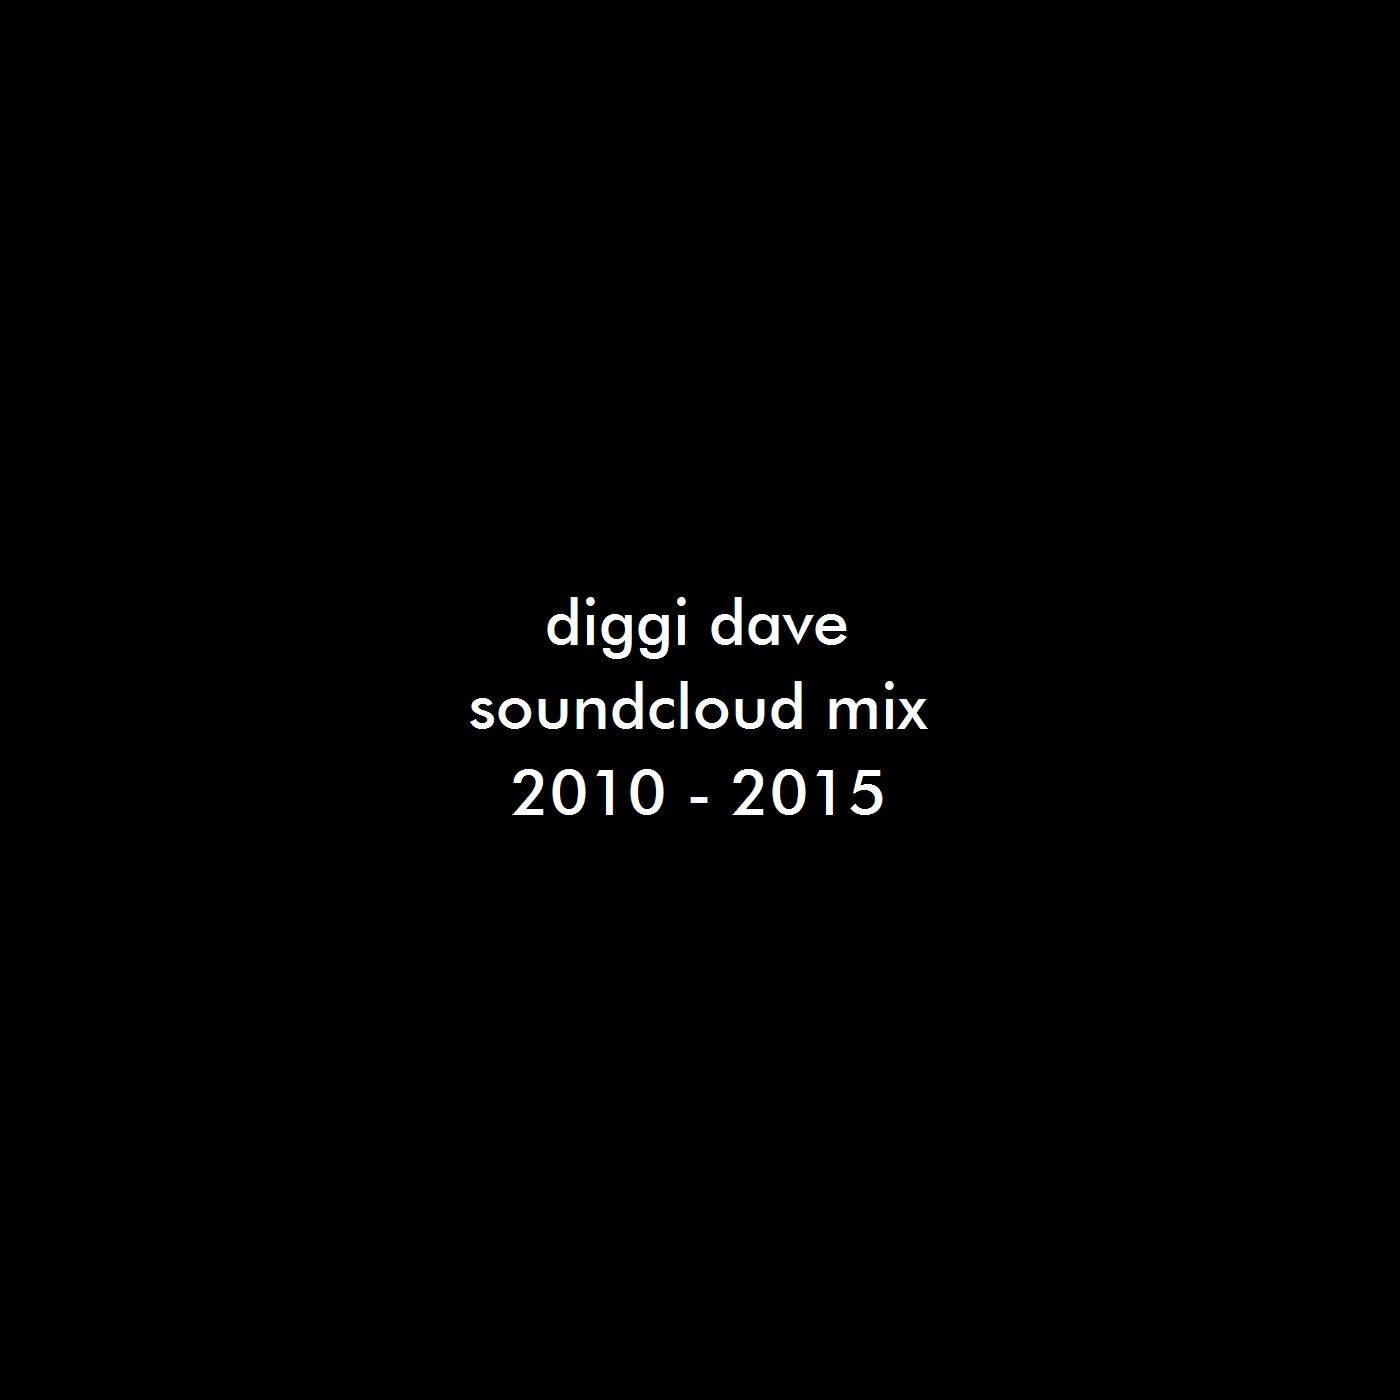 Soundcloud mix (2010-2015)